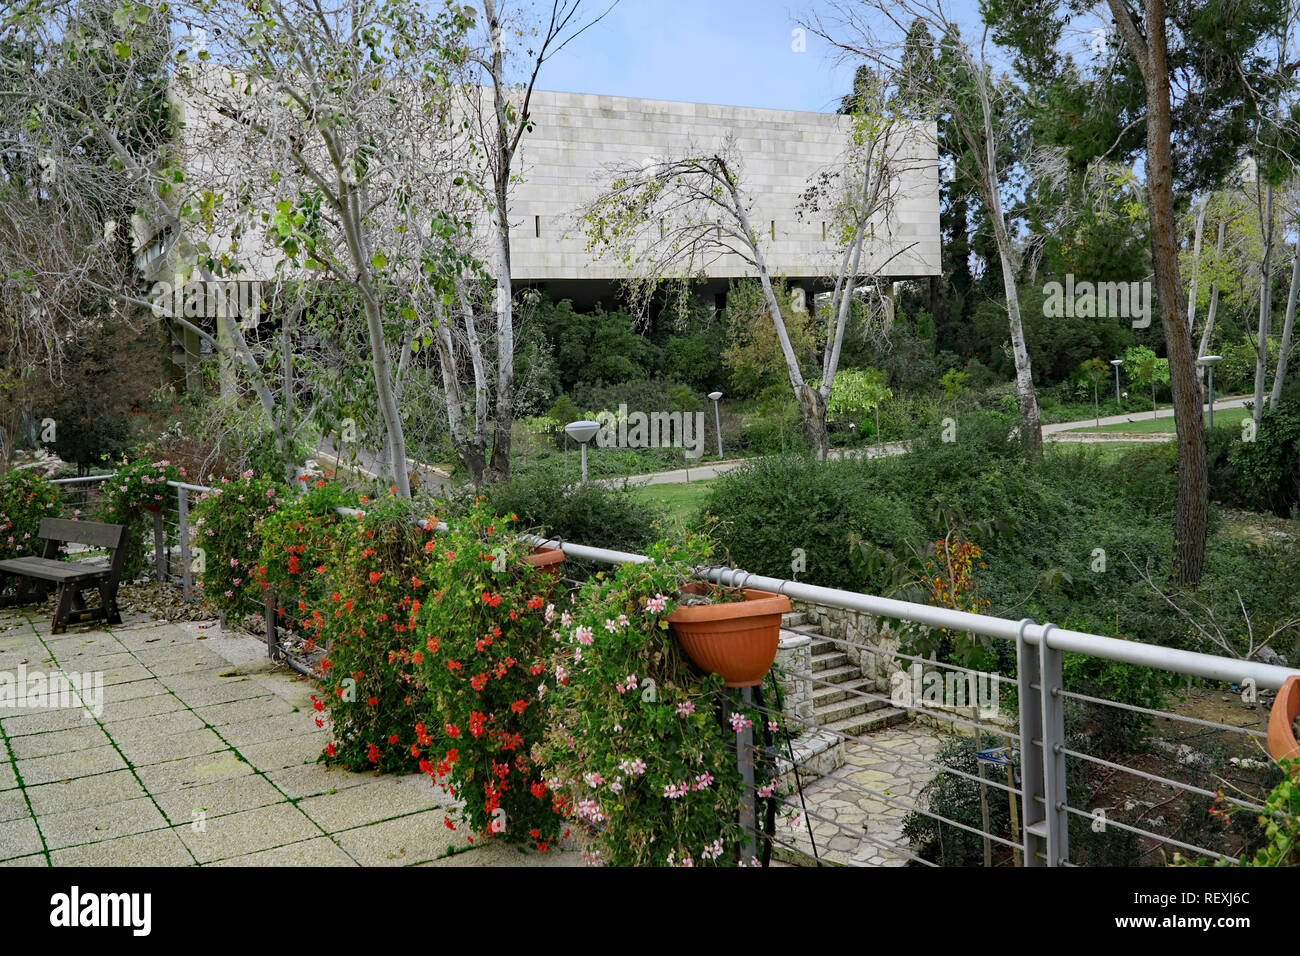 Hebrew University of Jerusalem, garden on Givat Ram Campus, with main library building in the background - Stock Image